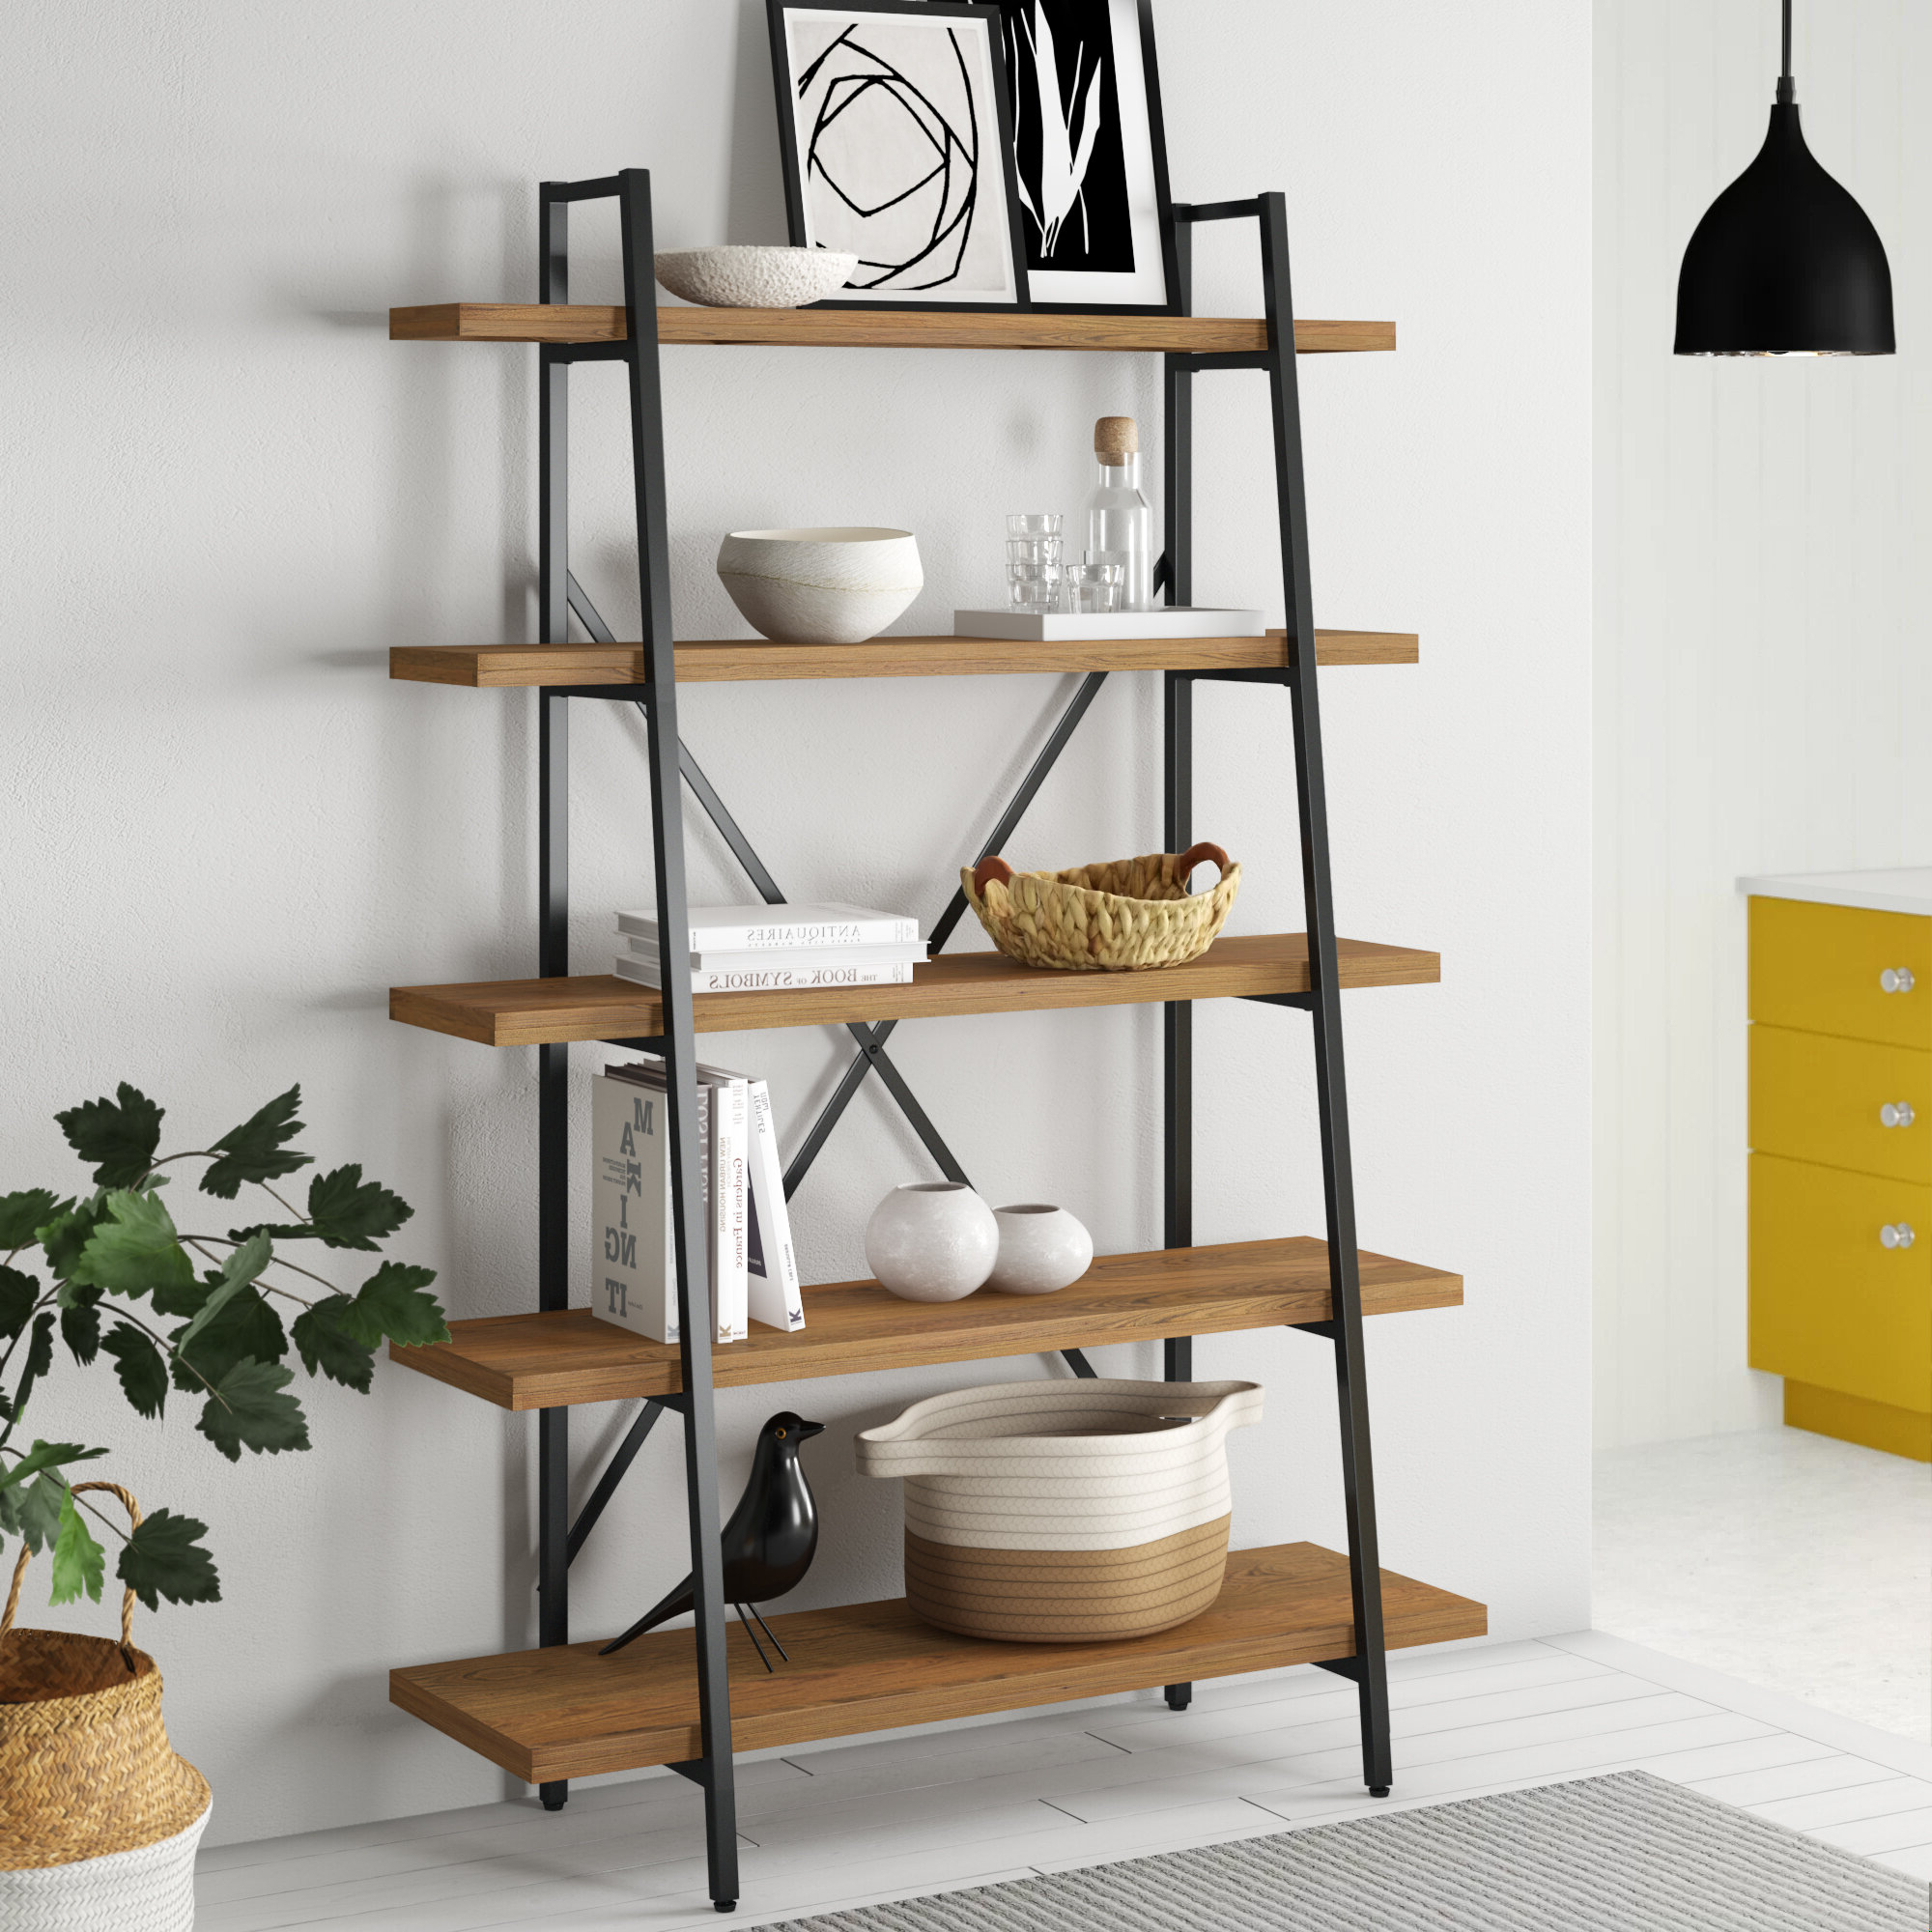 2019 Champney Etagere Bookcase Within Whidden Etagere Bookcases (View 8 of 20)